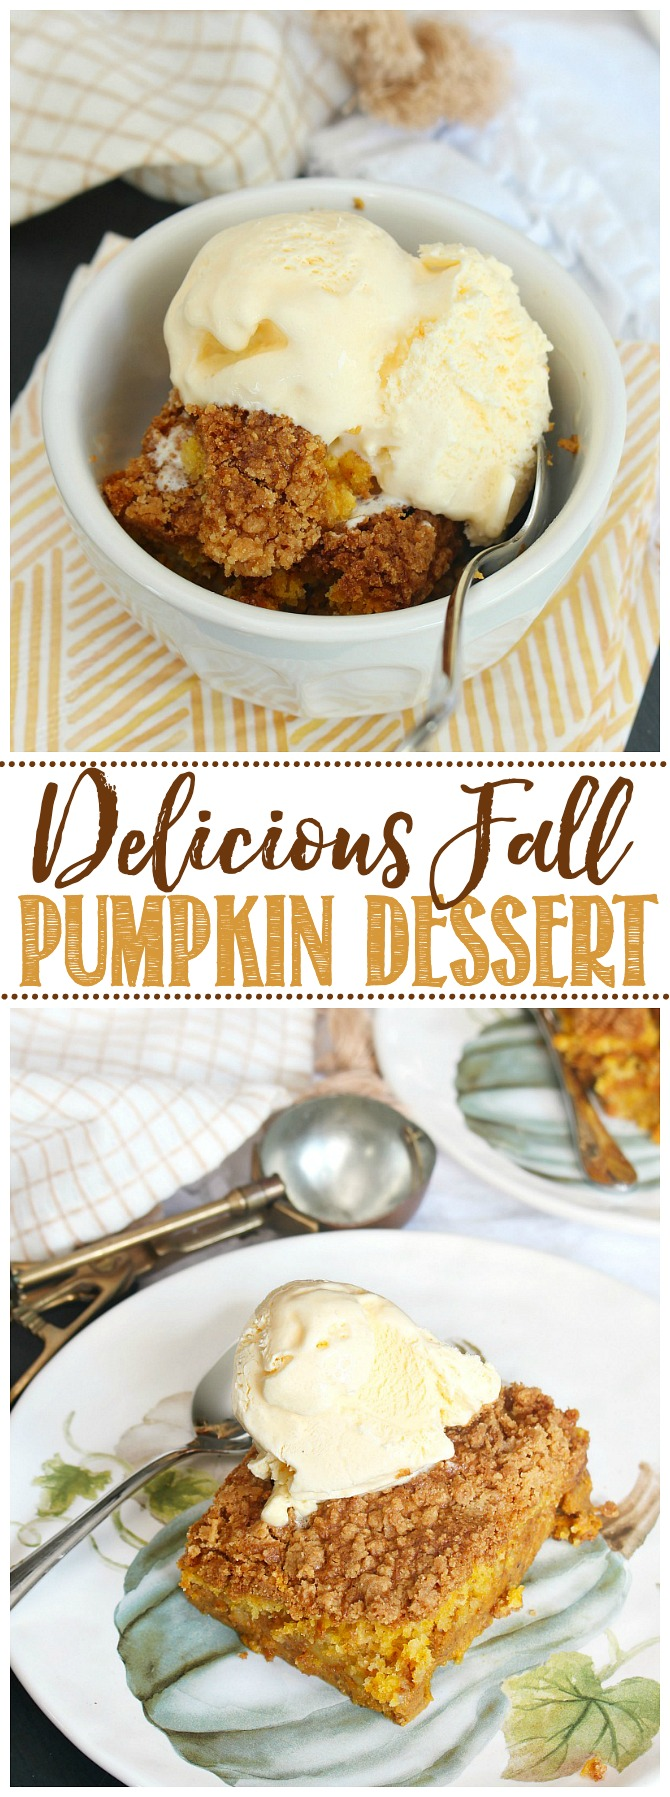 Pumpkin dessert with a bucket of vanilla ice cream.